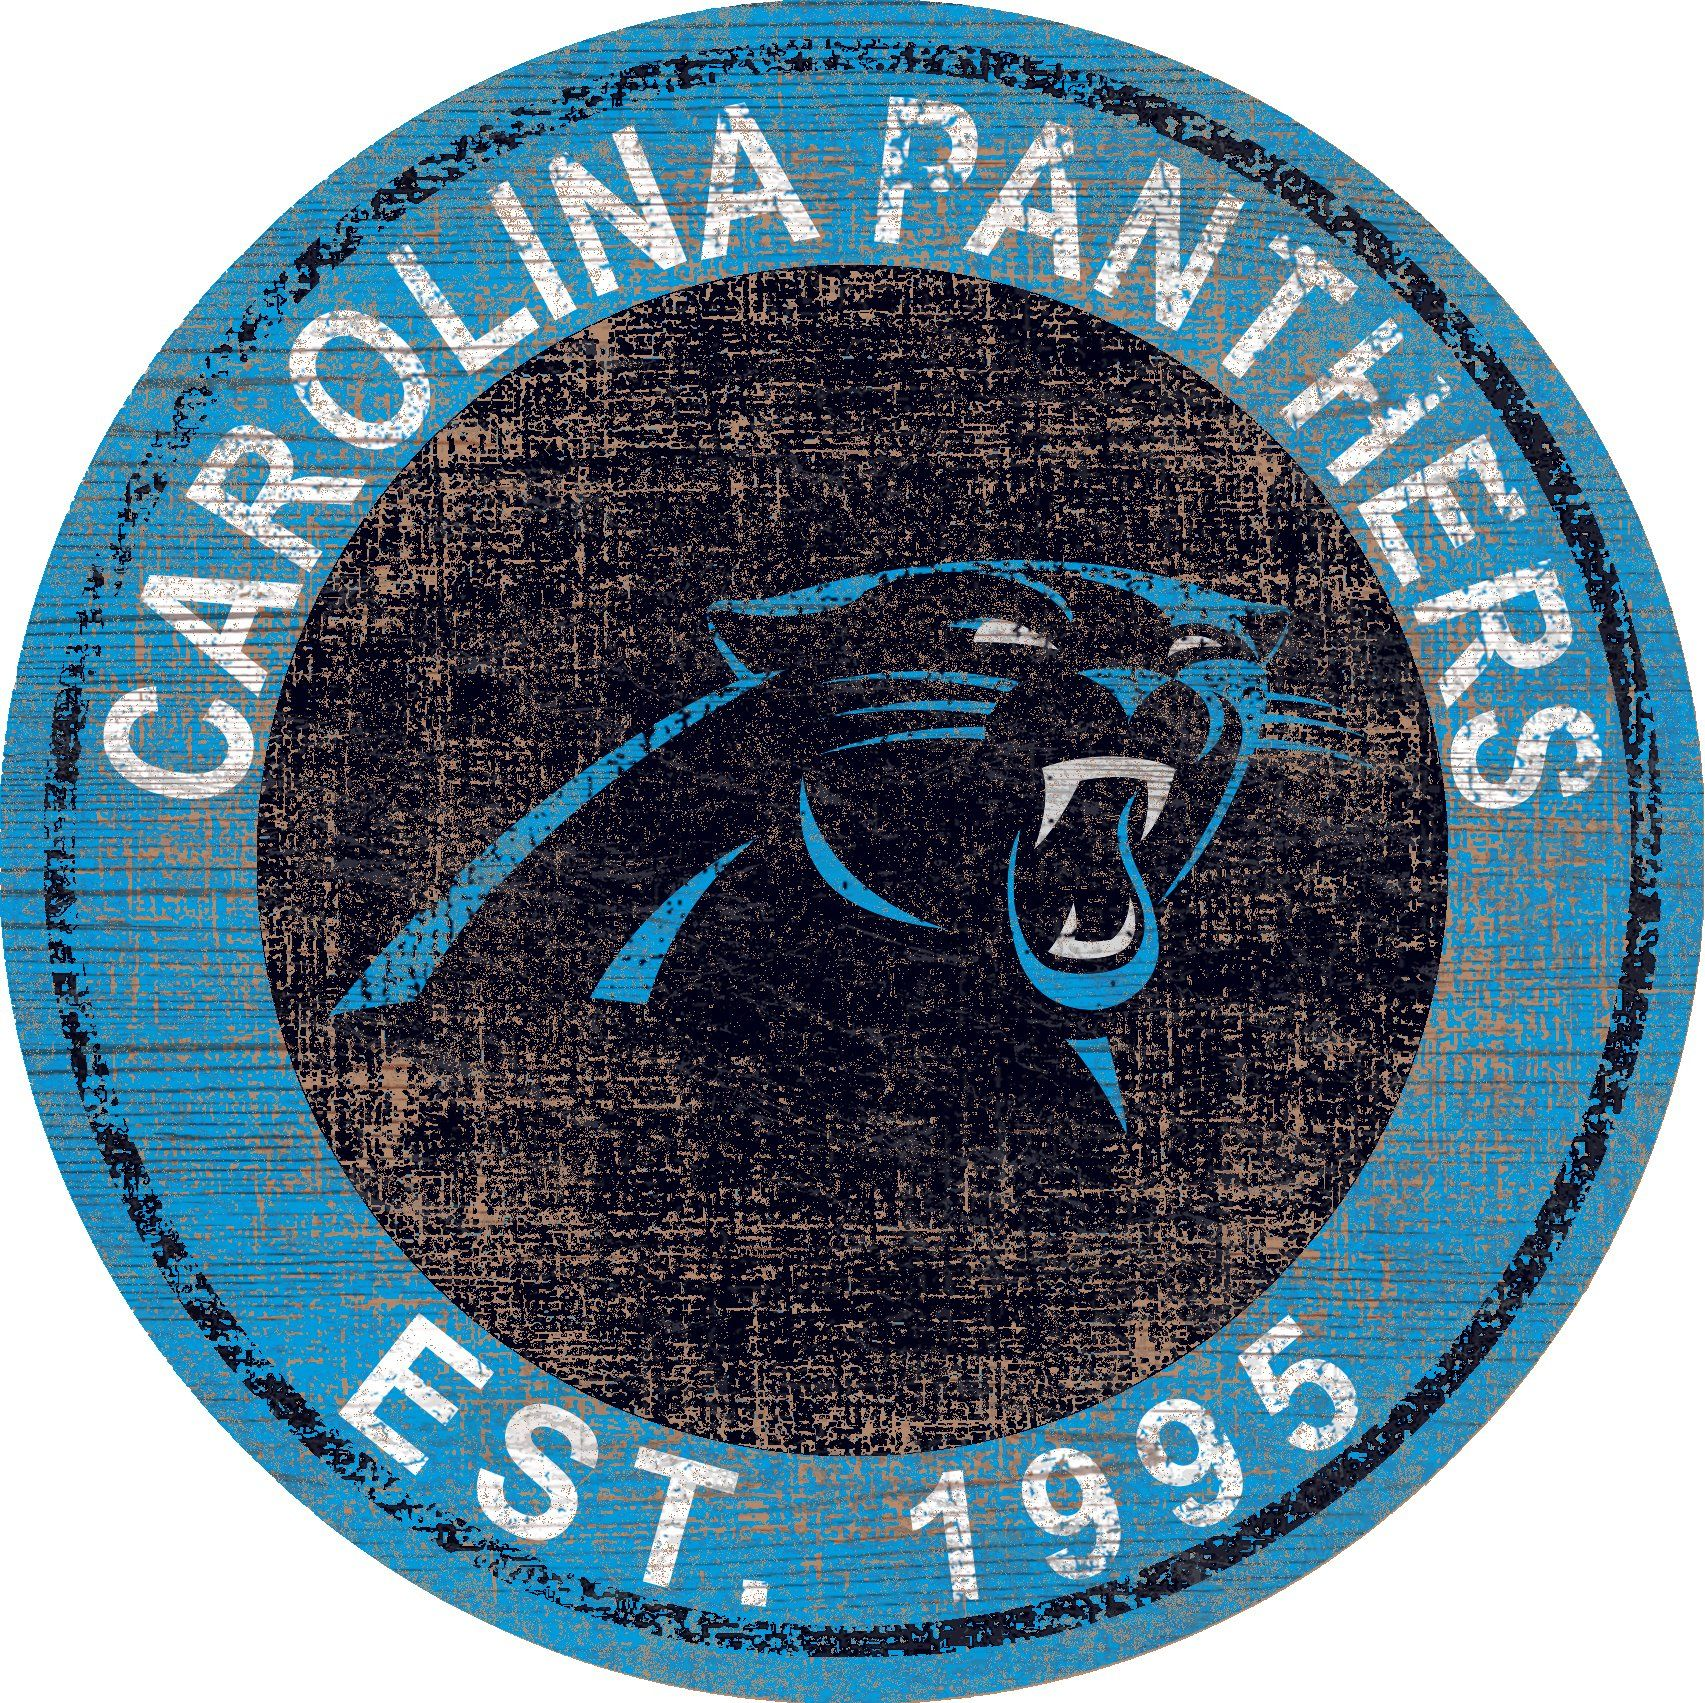 Carolina panthers heritage logo